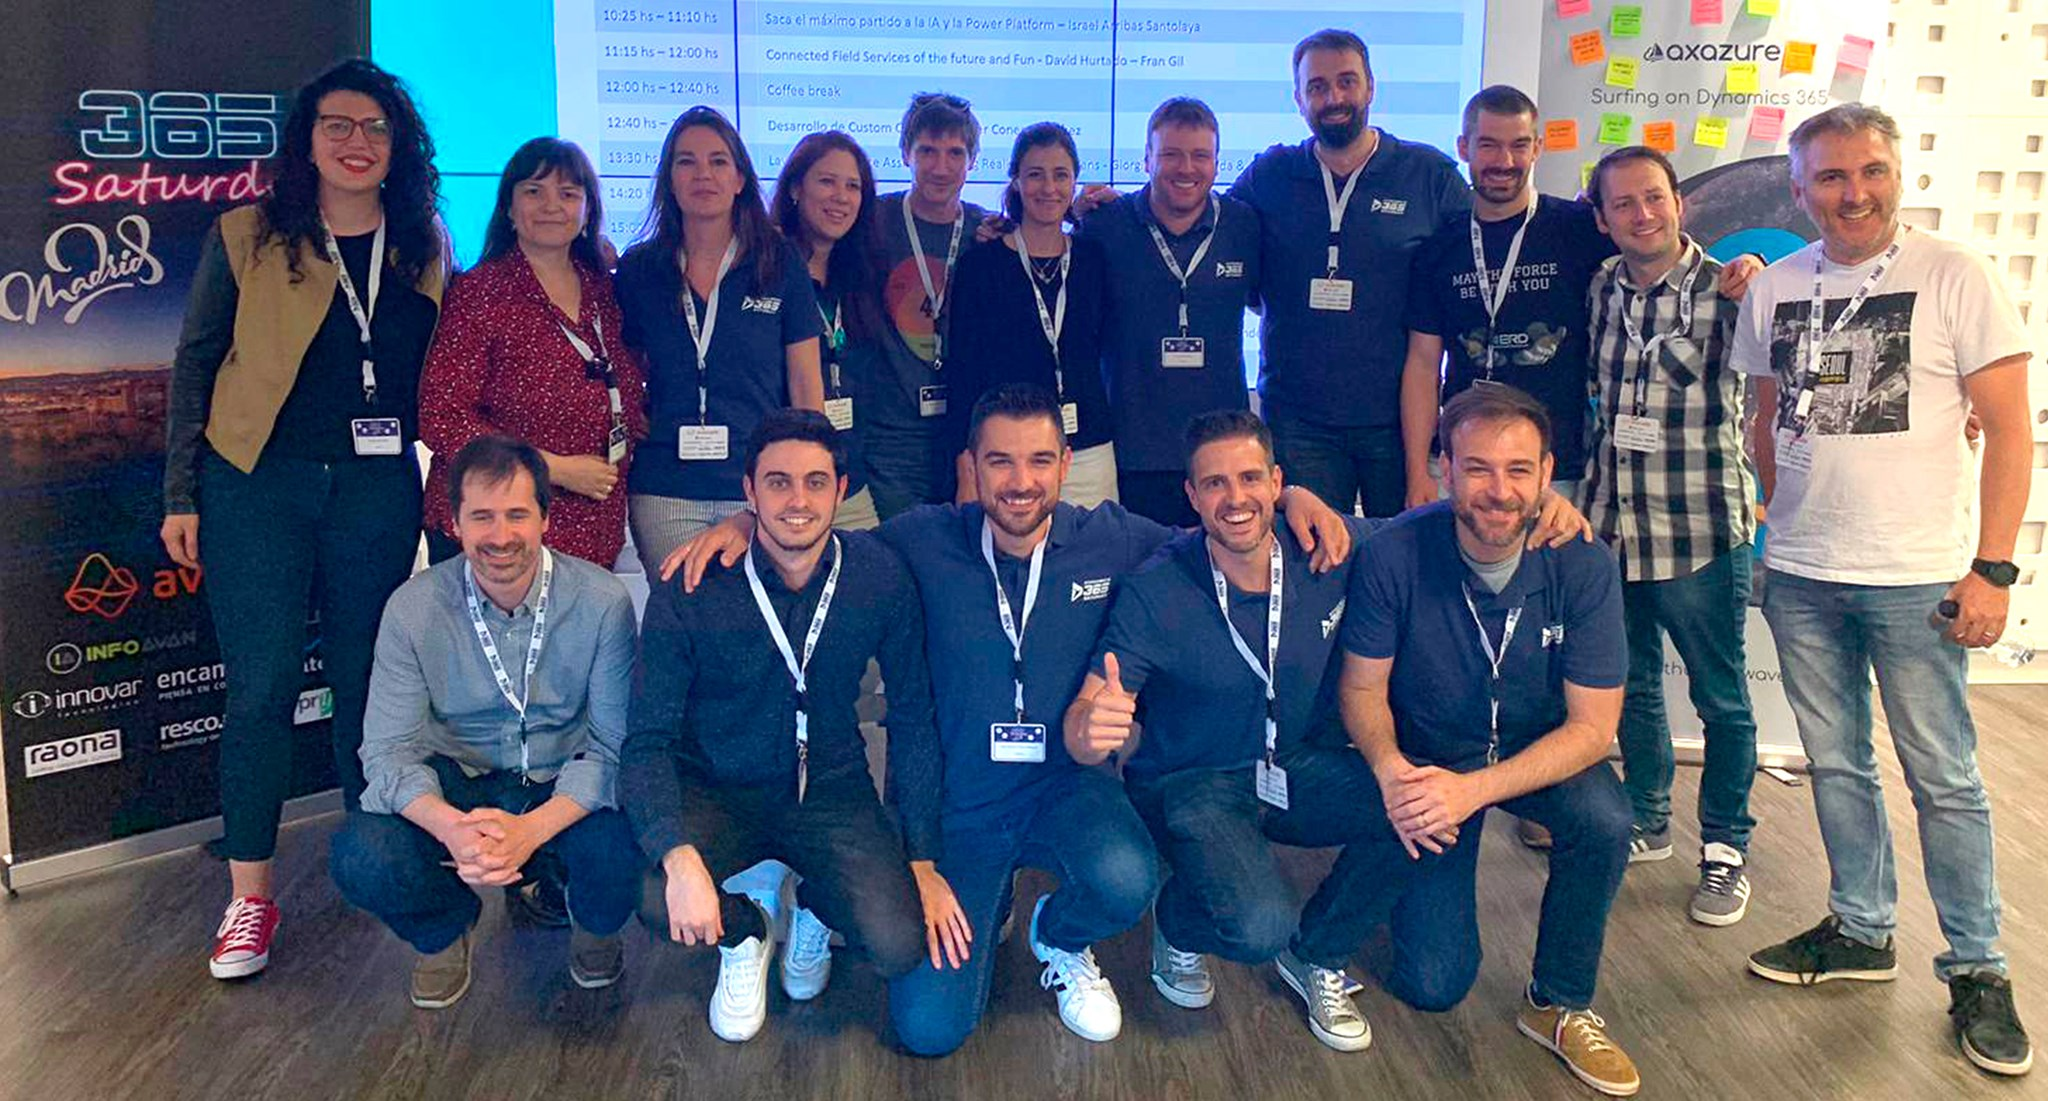 Dynamics 365 Saturday Madrid 2019